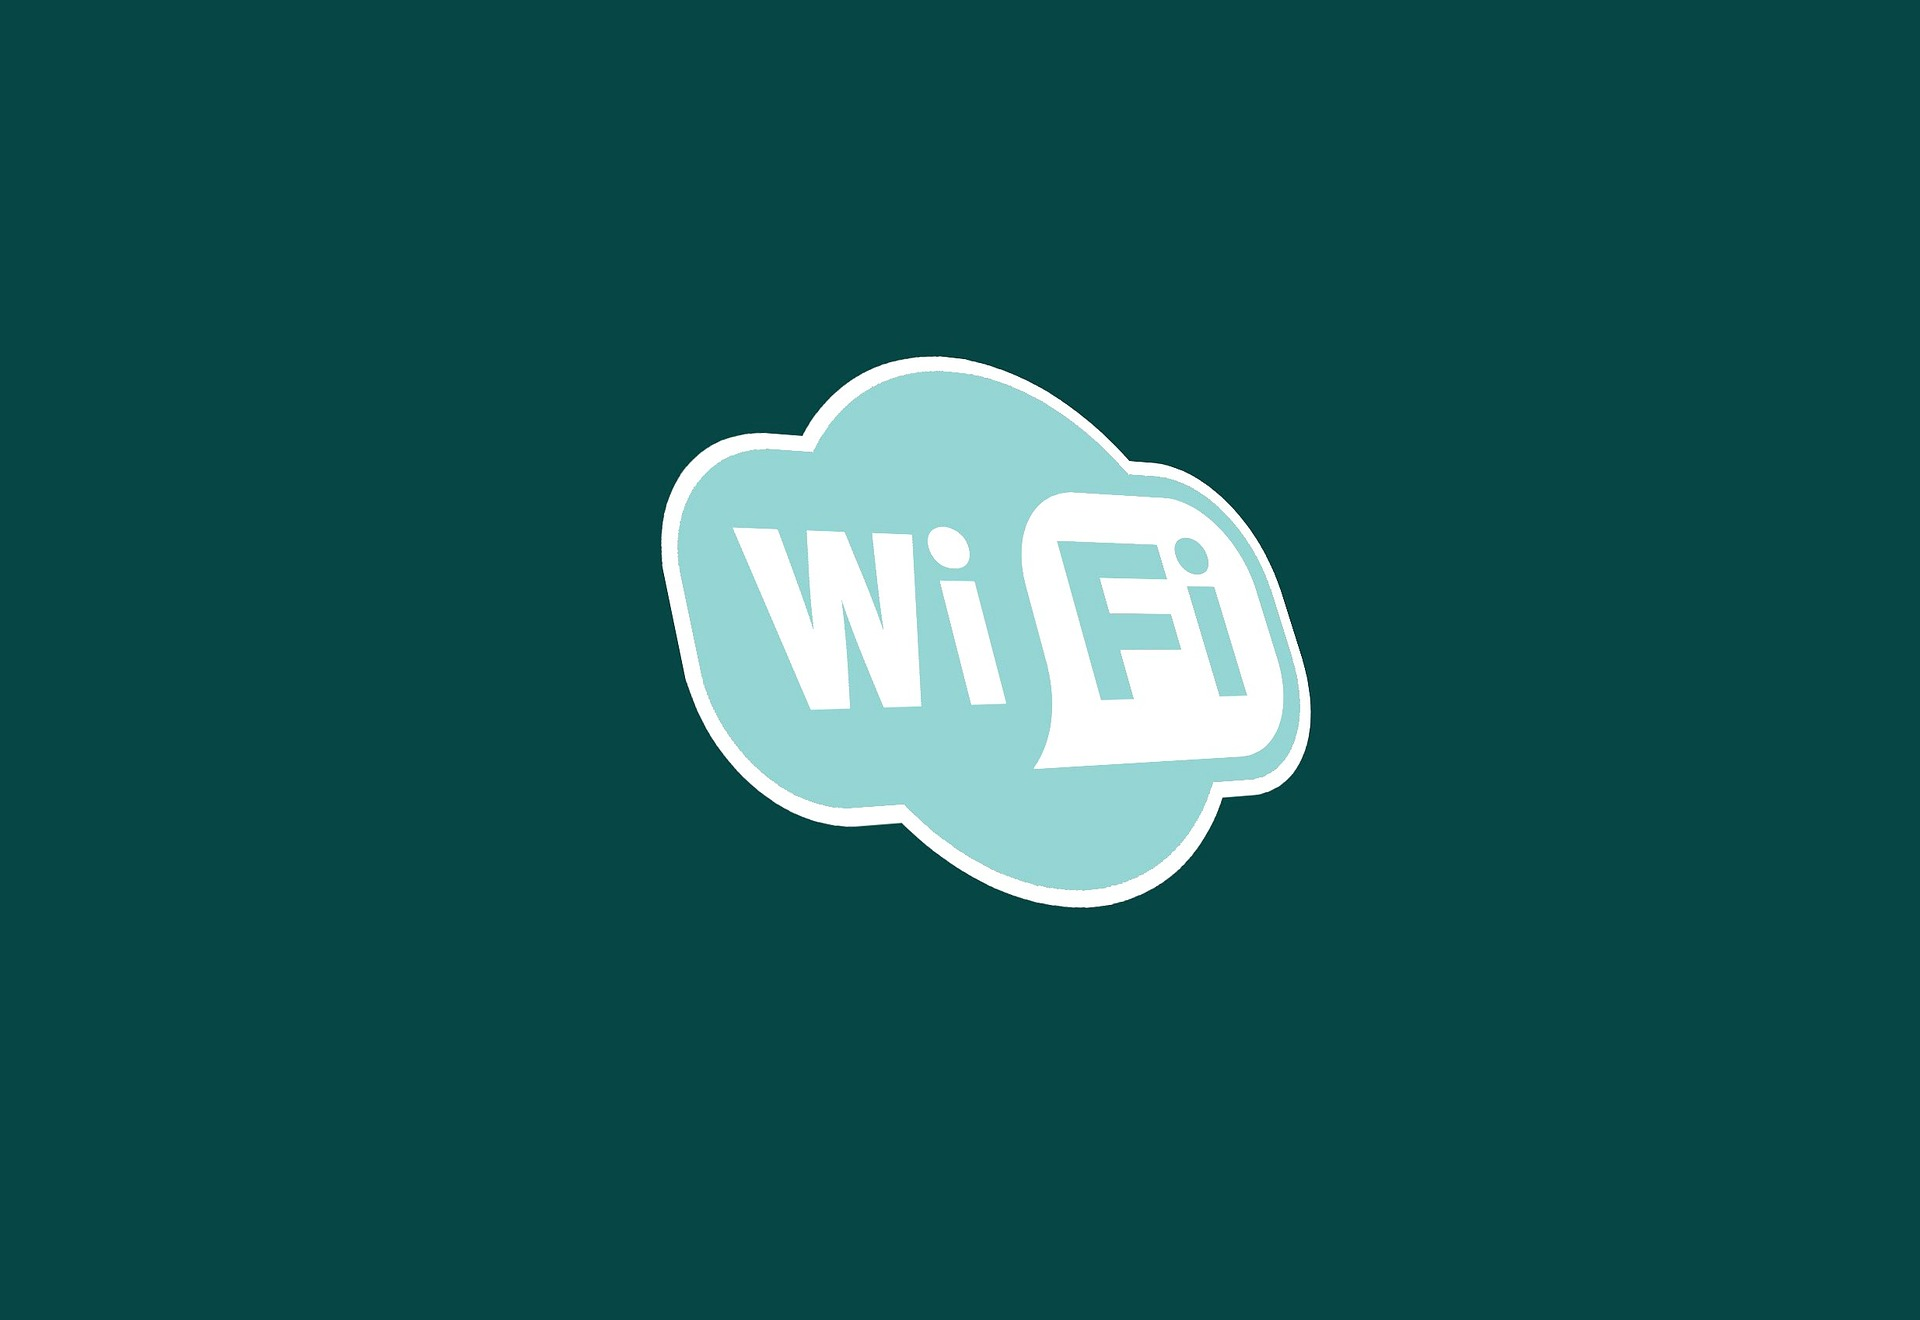 Wi-Fi connection – a necessity for events